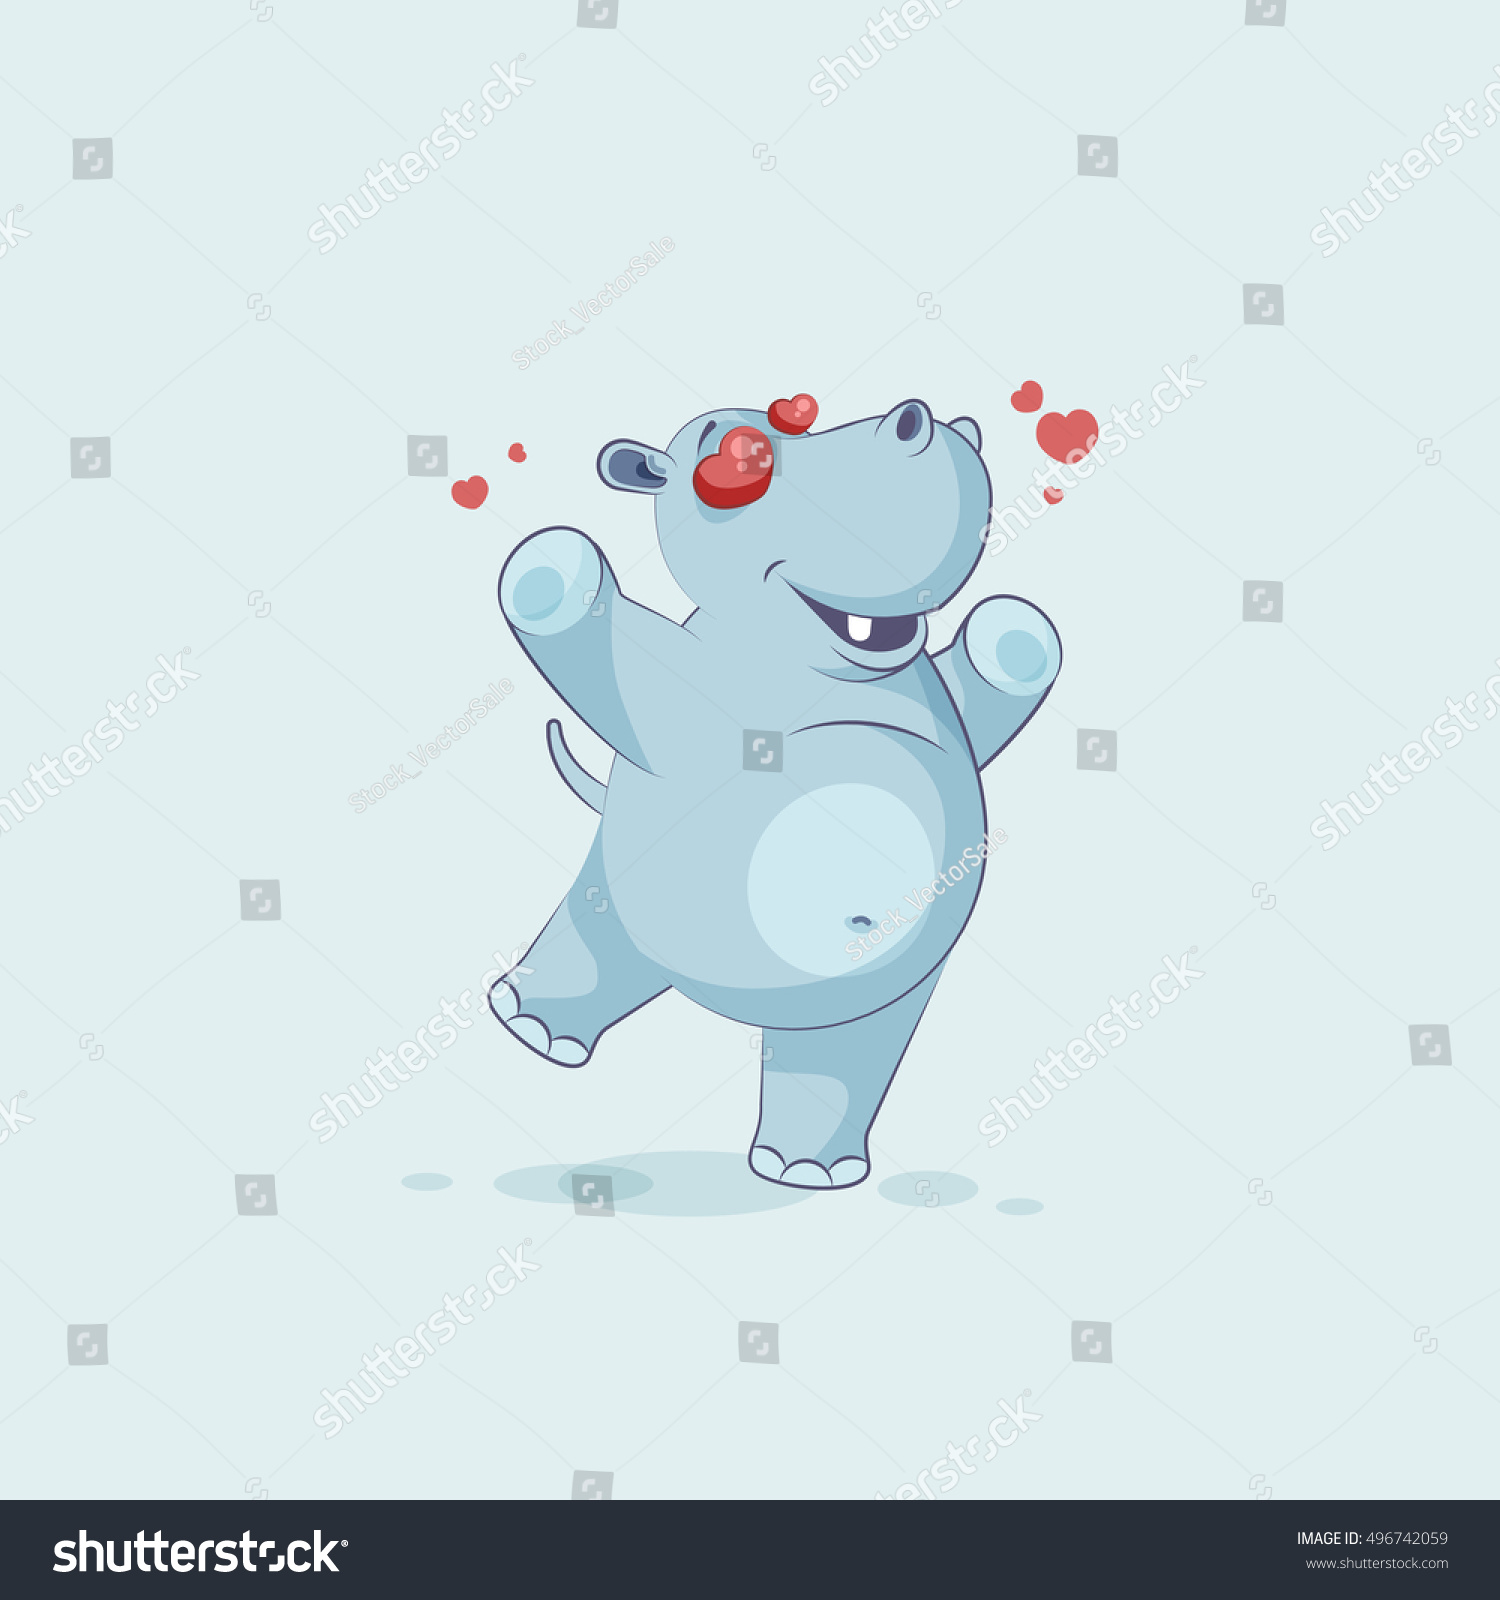 Vector stock illustration isolated emoji character stock vector vector stock illustration isolated emoji character cartoon hippopotamus in love flying with hearts sticker emoticon for biocorpaavc Image collections